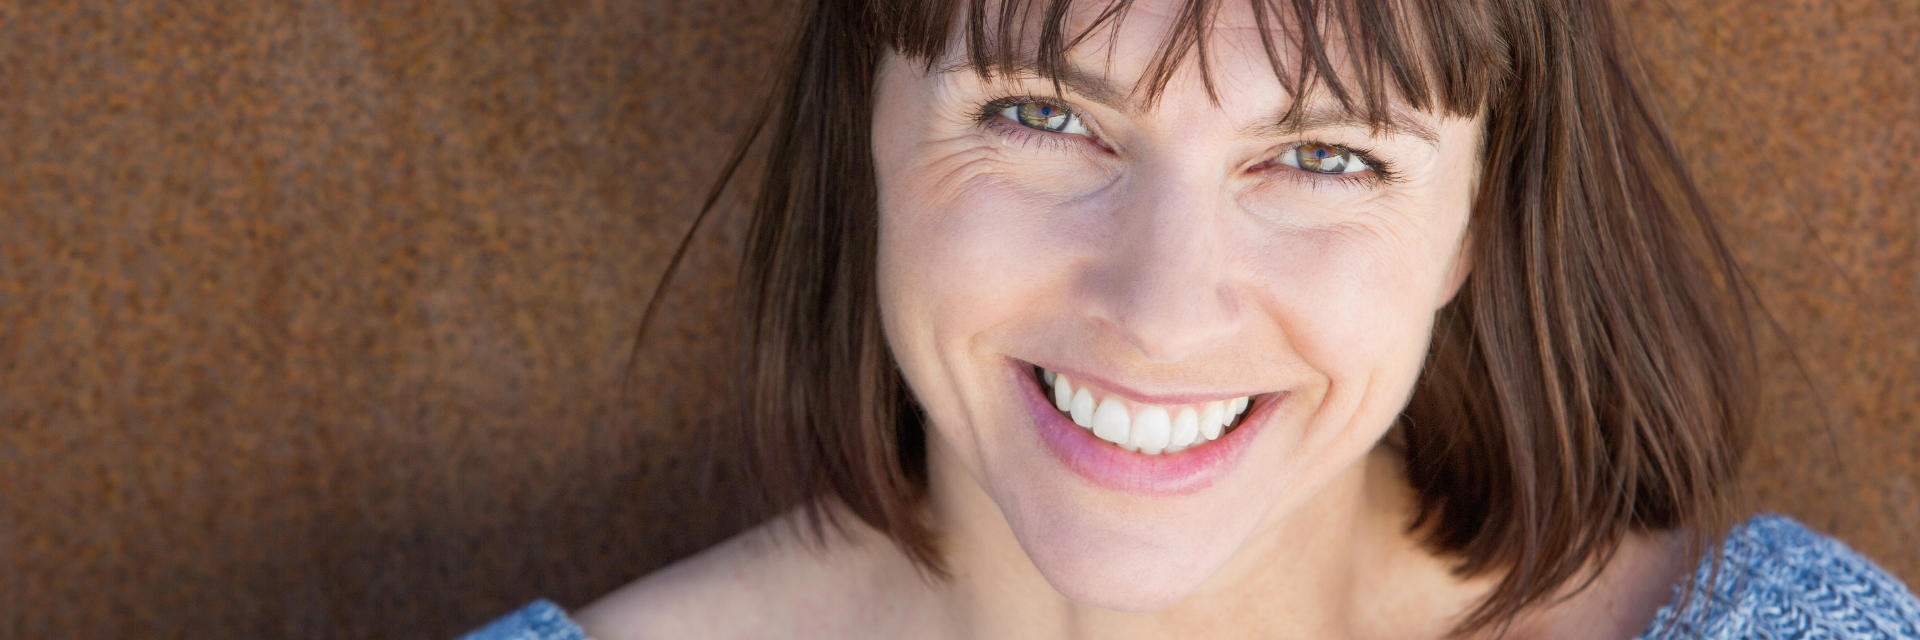 Happy brunette middle-aged woman showing nice teeth in her smile.